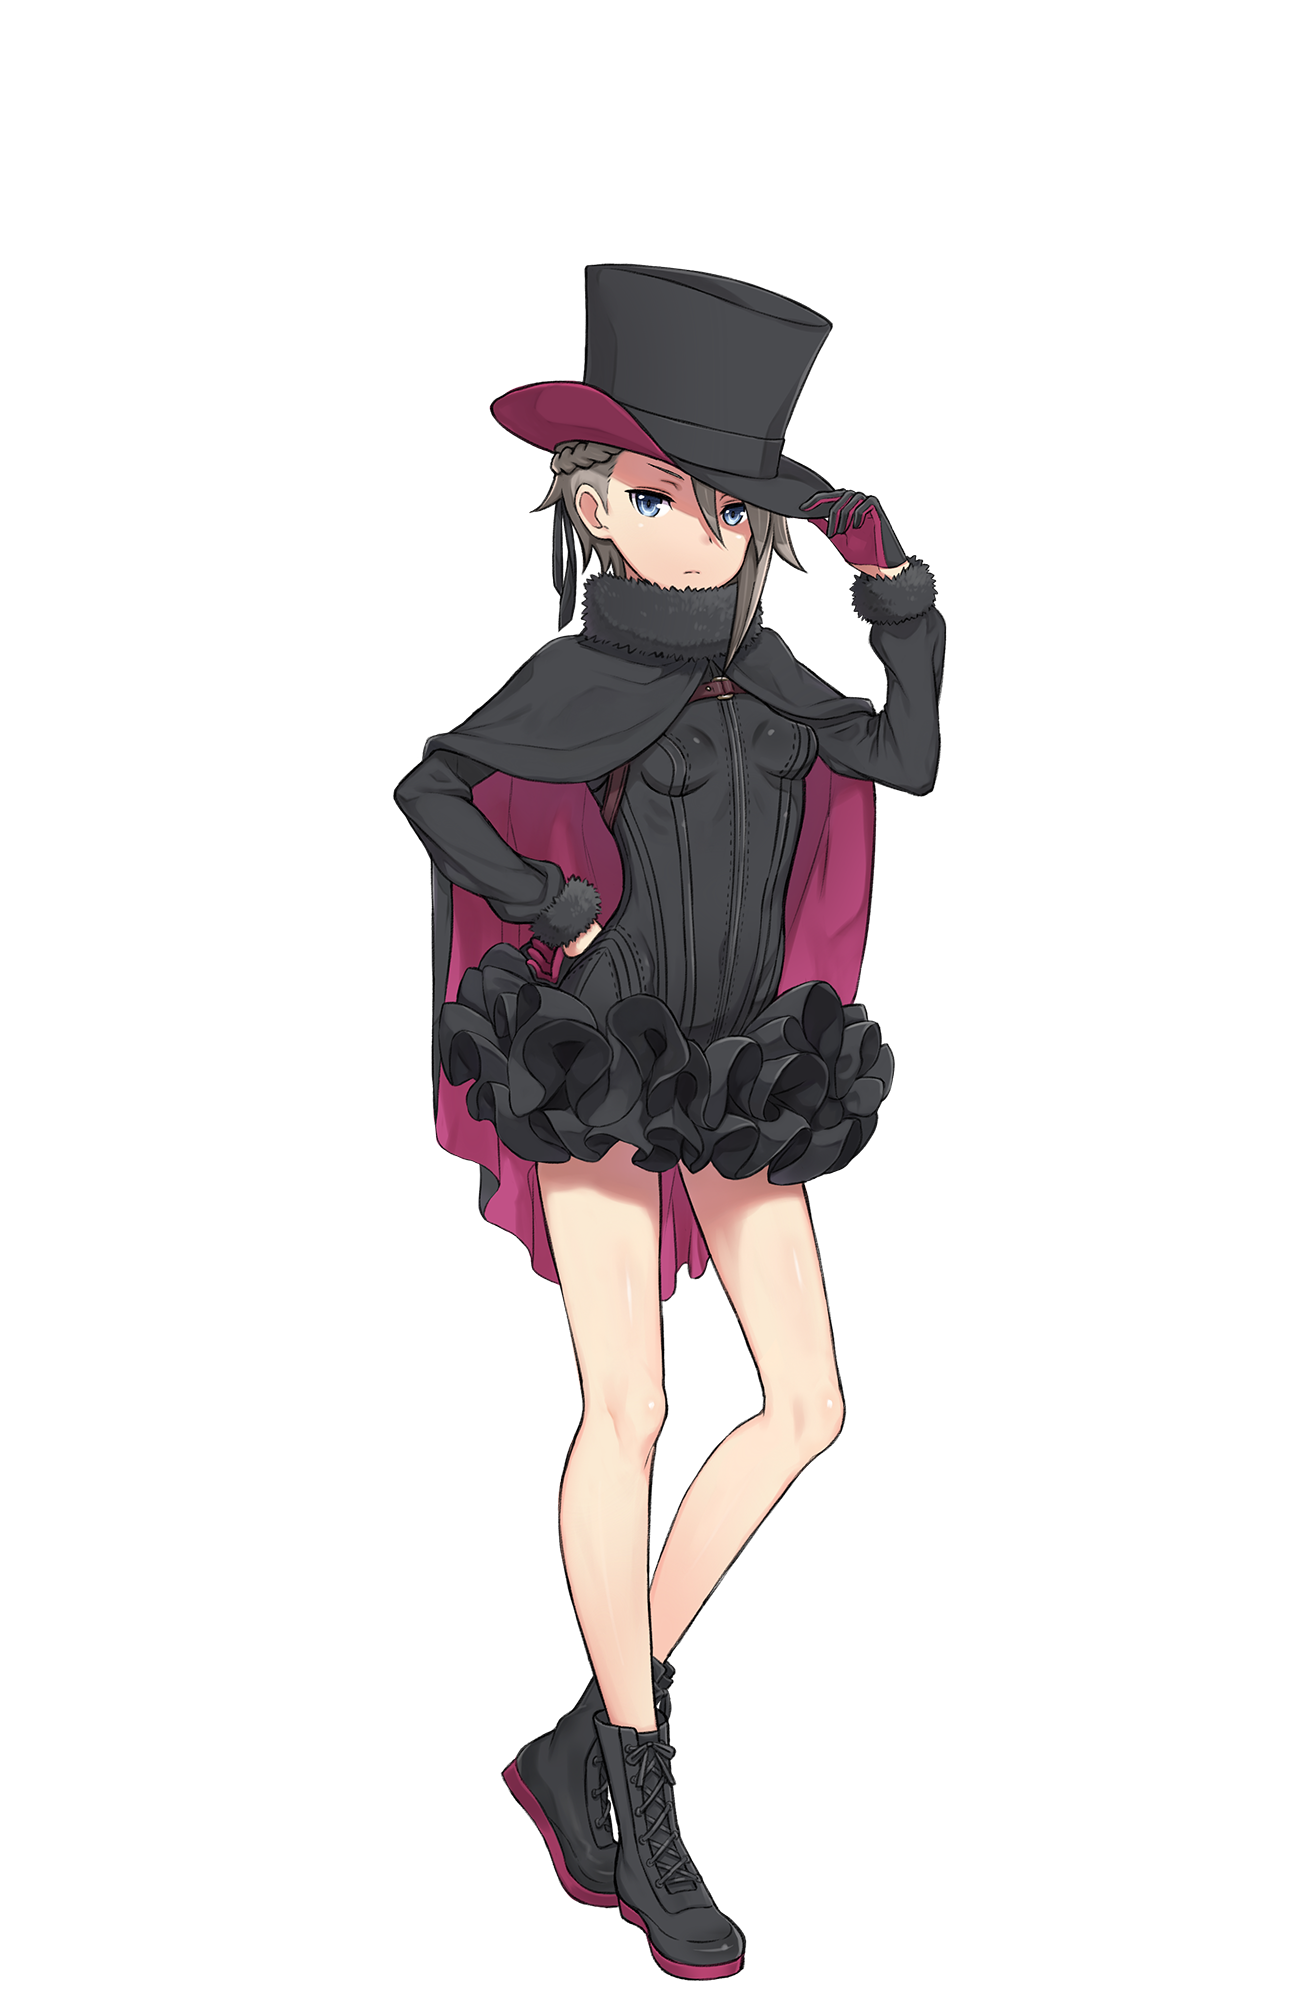 character000001_image_out_game.png